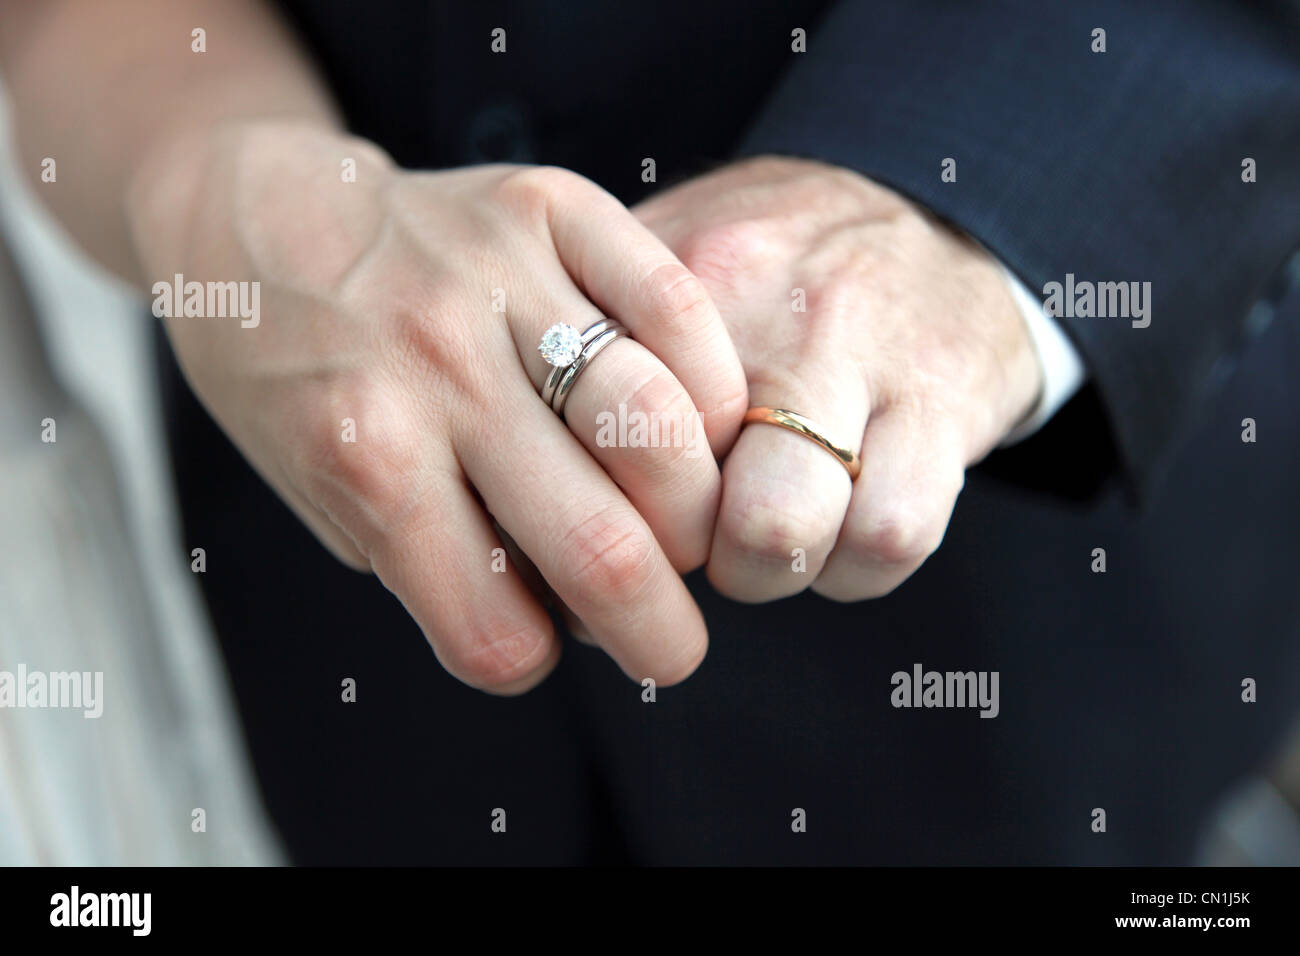 close ring wedding photo rings york bride holding and showing hands photos image stock engagement groom up new